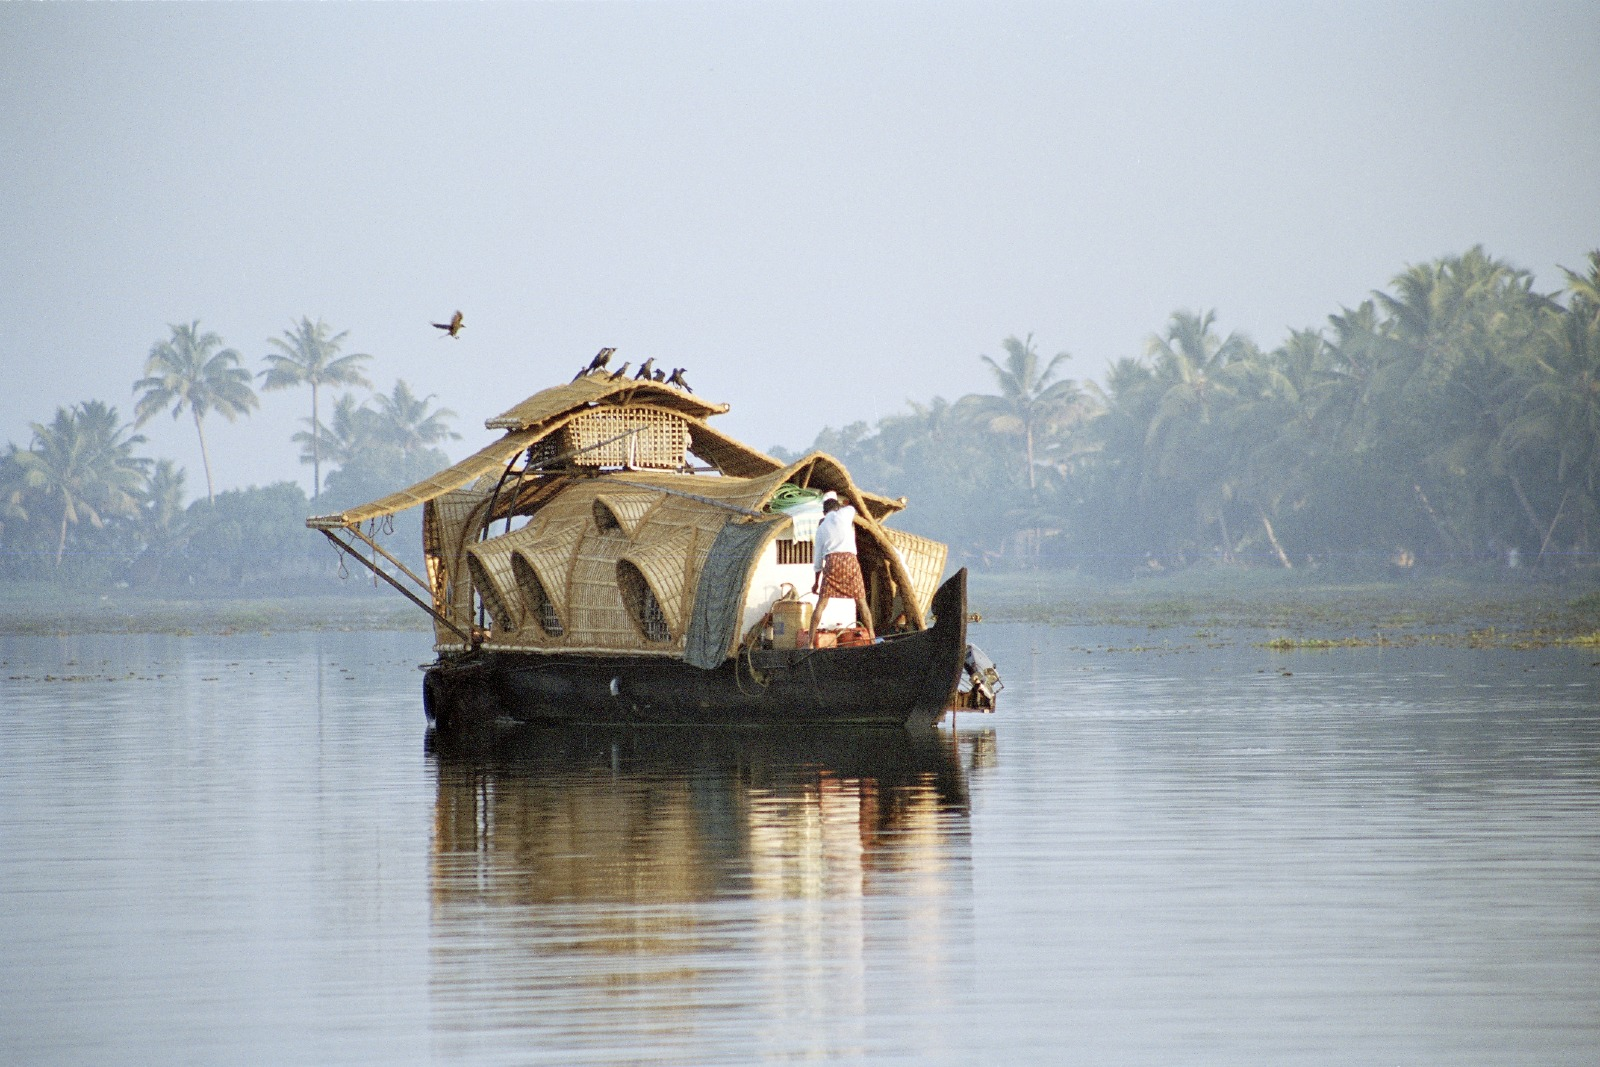 A traditional Kettuvallum fishing barge. Photo courtesy of Brett Atkinson